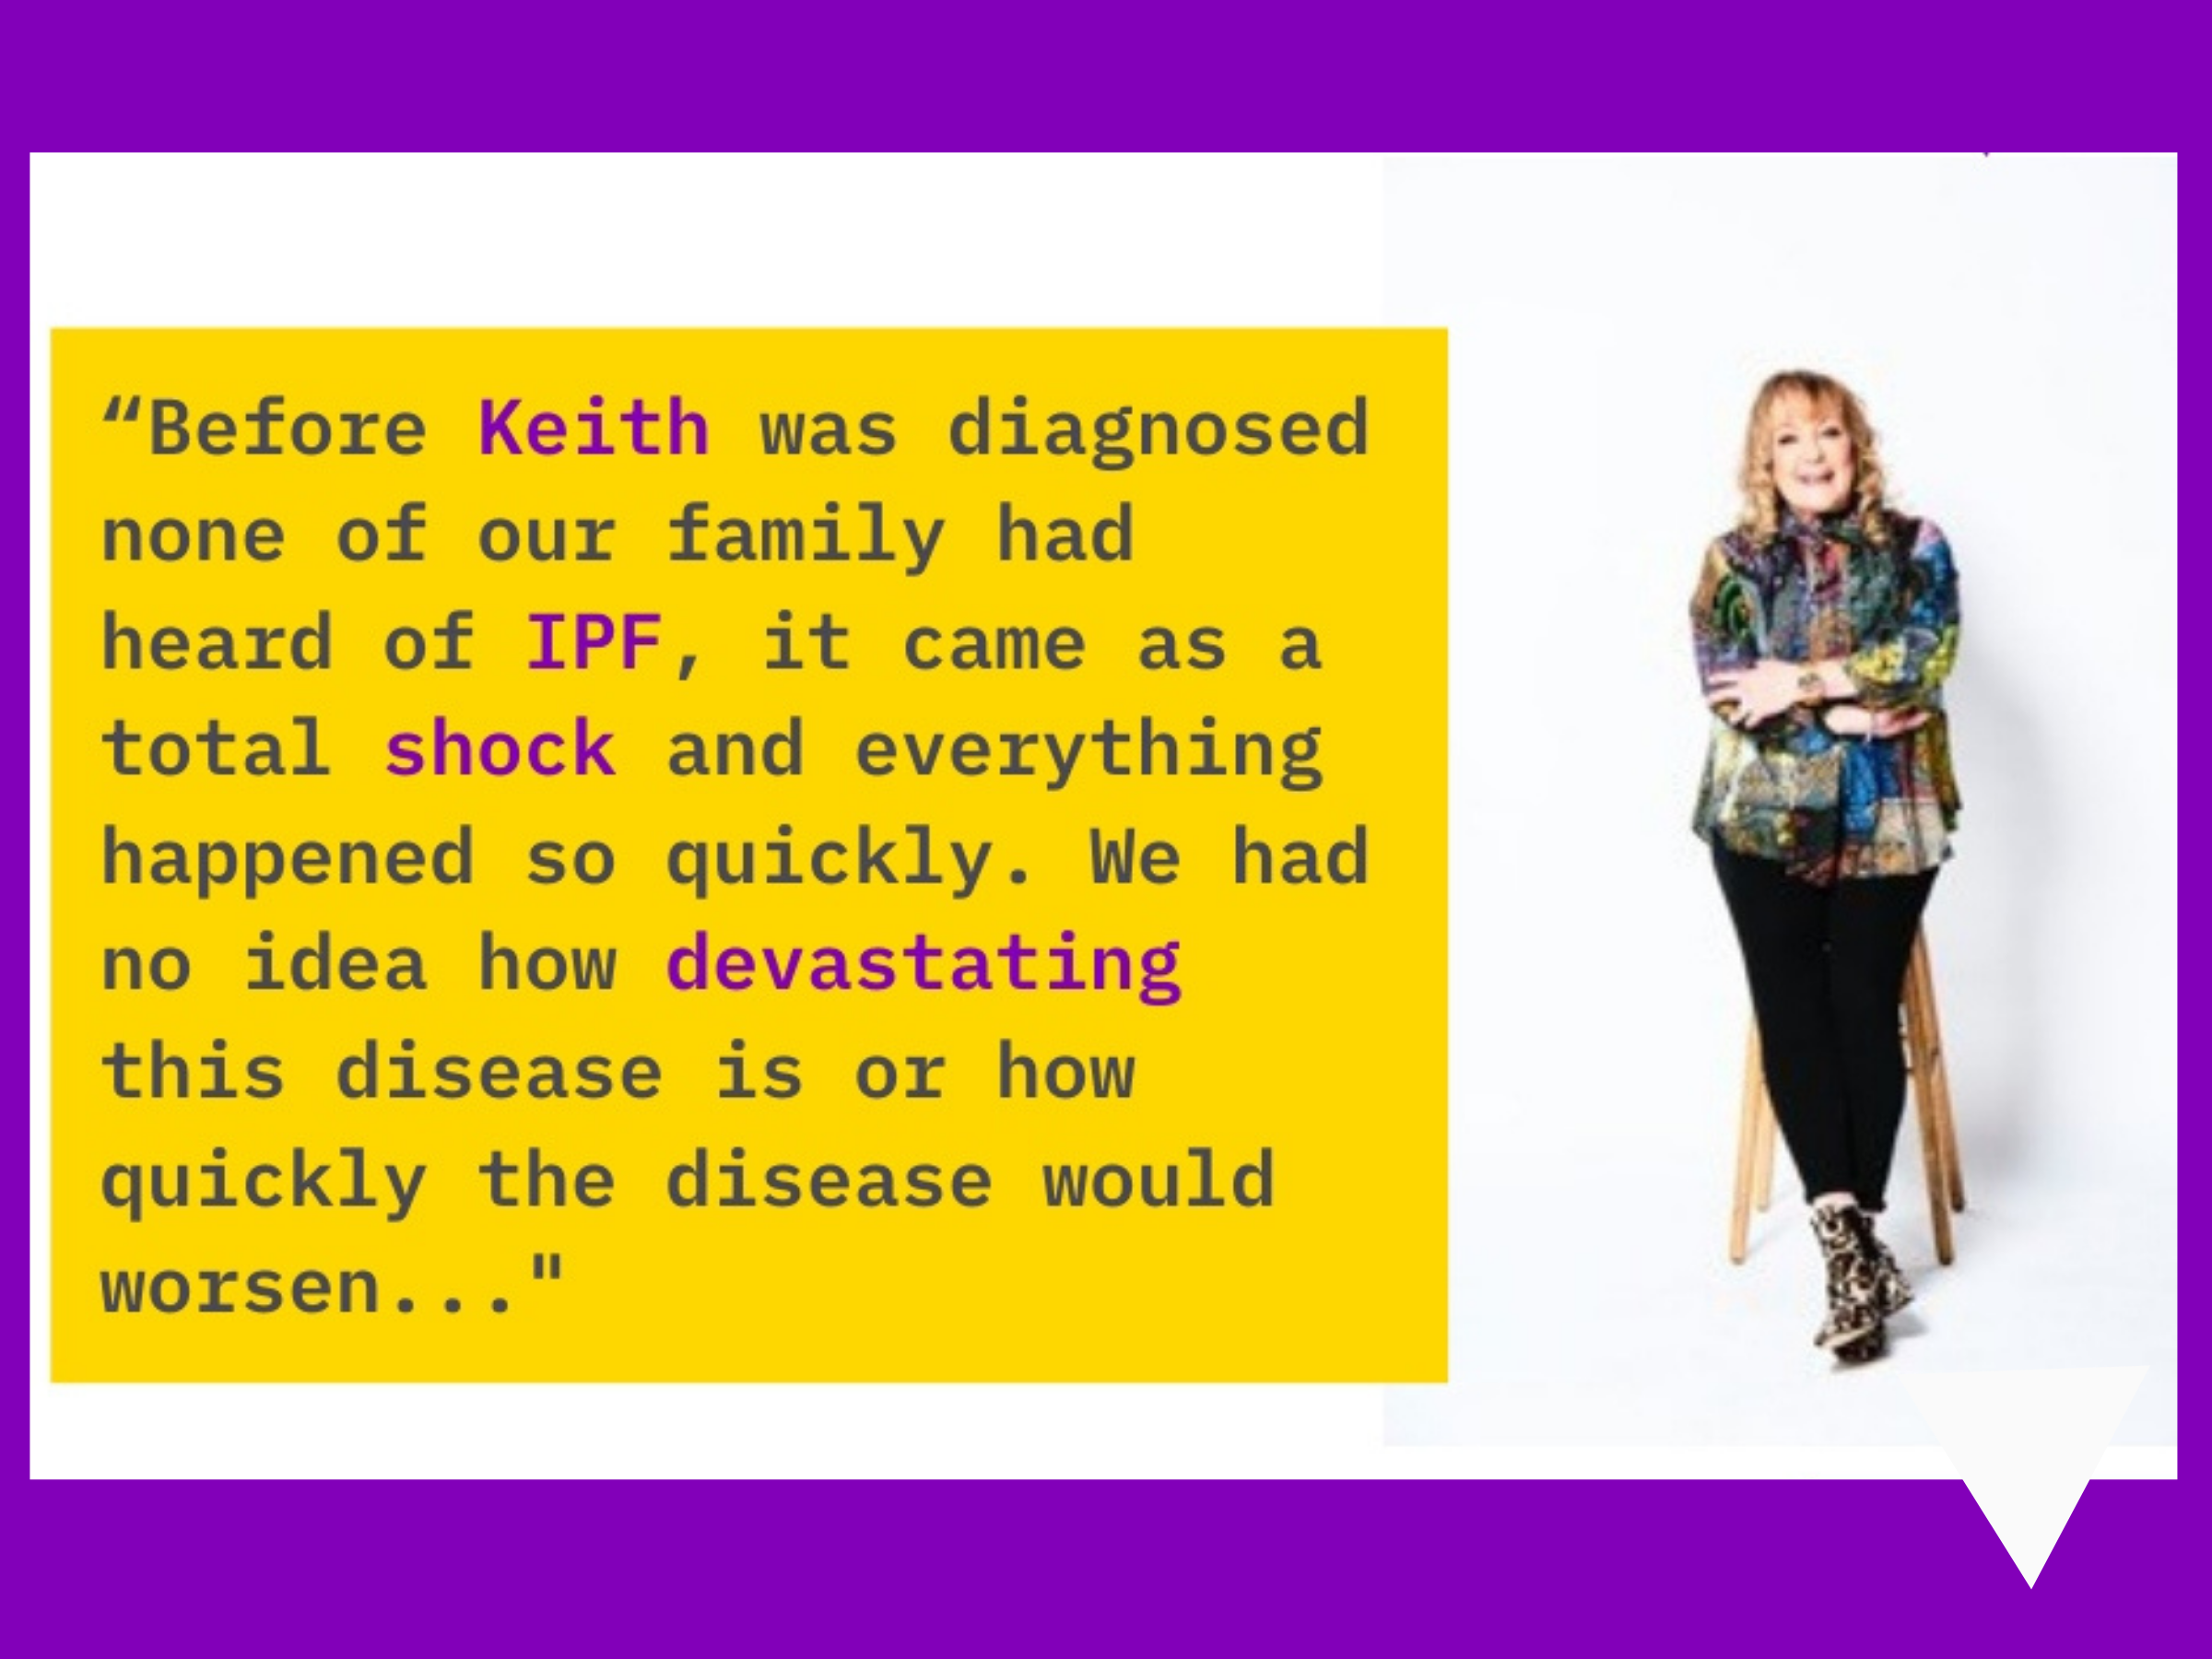 A picture of Janet discussing her families' experience of her late brother, Keith Chegwin's IPF diagnosis